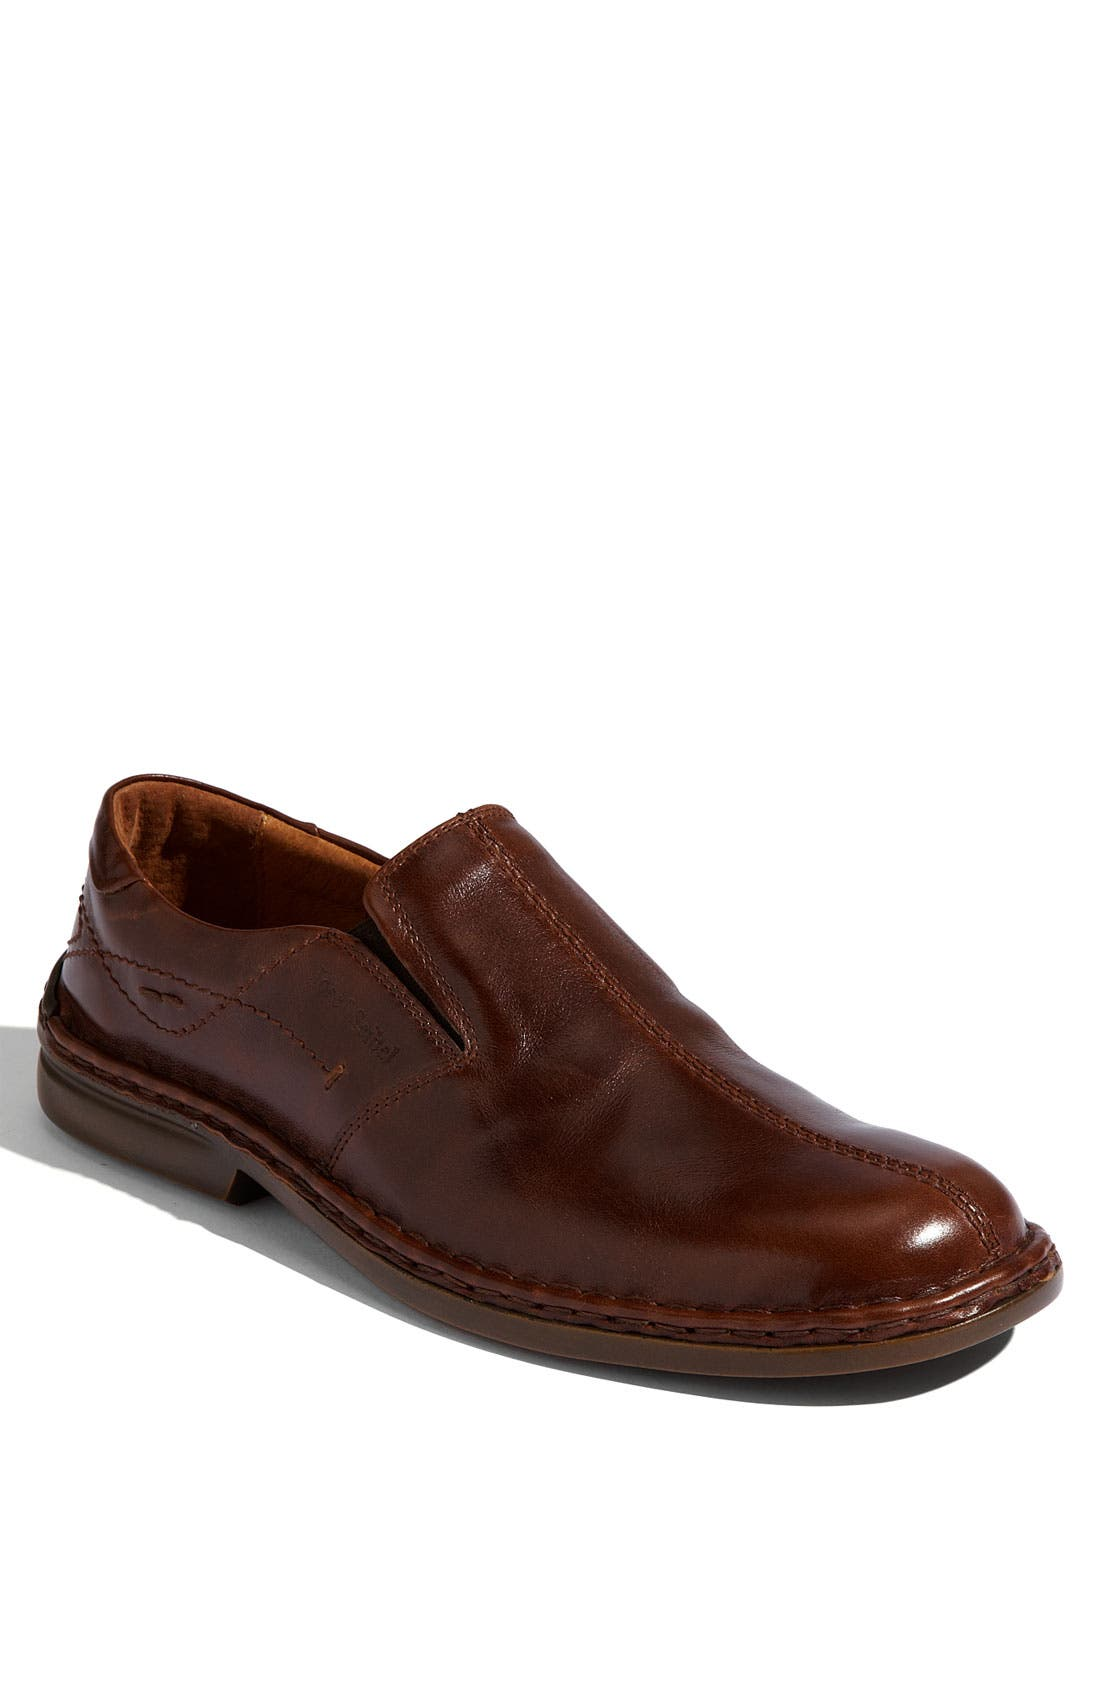 Alternate Image 1 Selected - Josef Seibel 'Vance' Slip-On